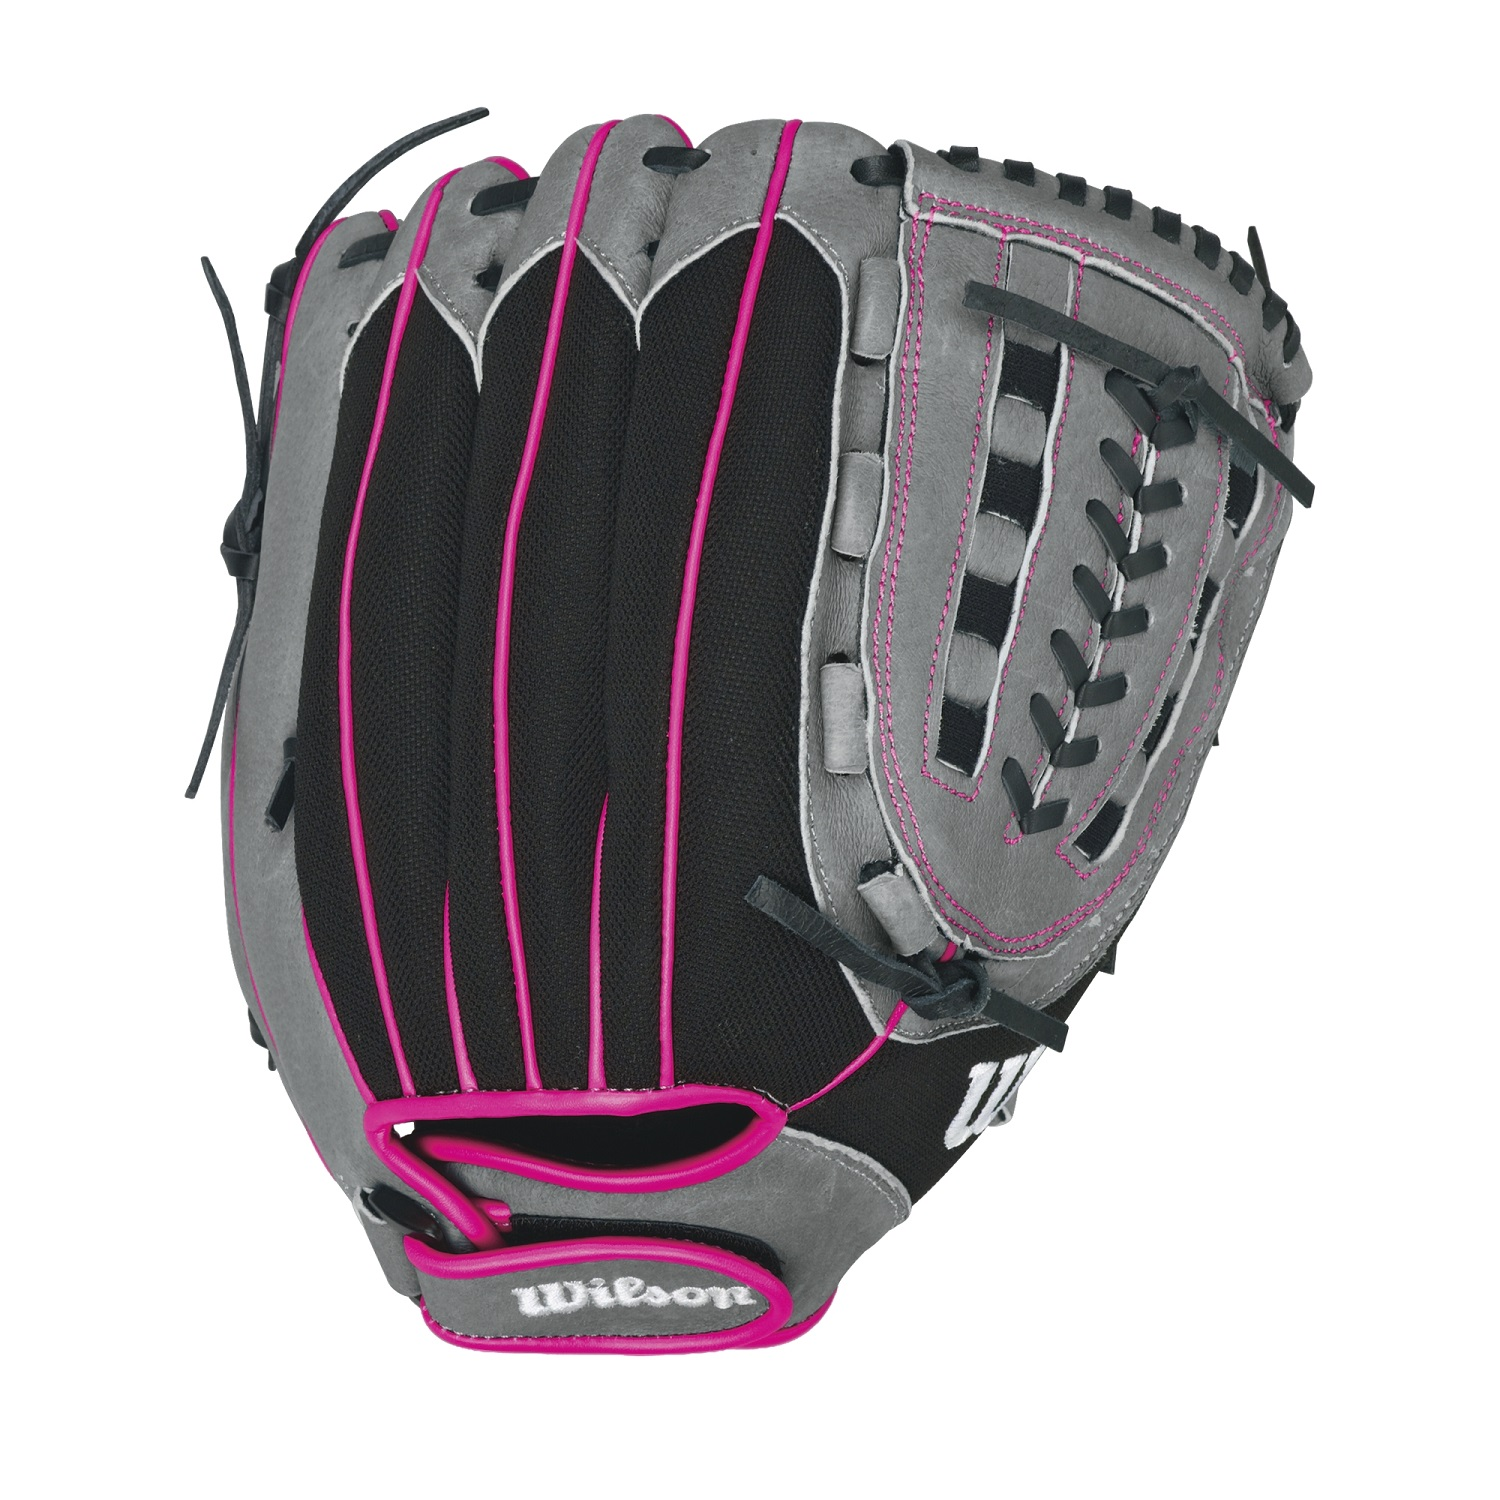 "Wilson Flash Fastpitch 11.5"" All Positions Glove-Right Hand Throw"